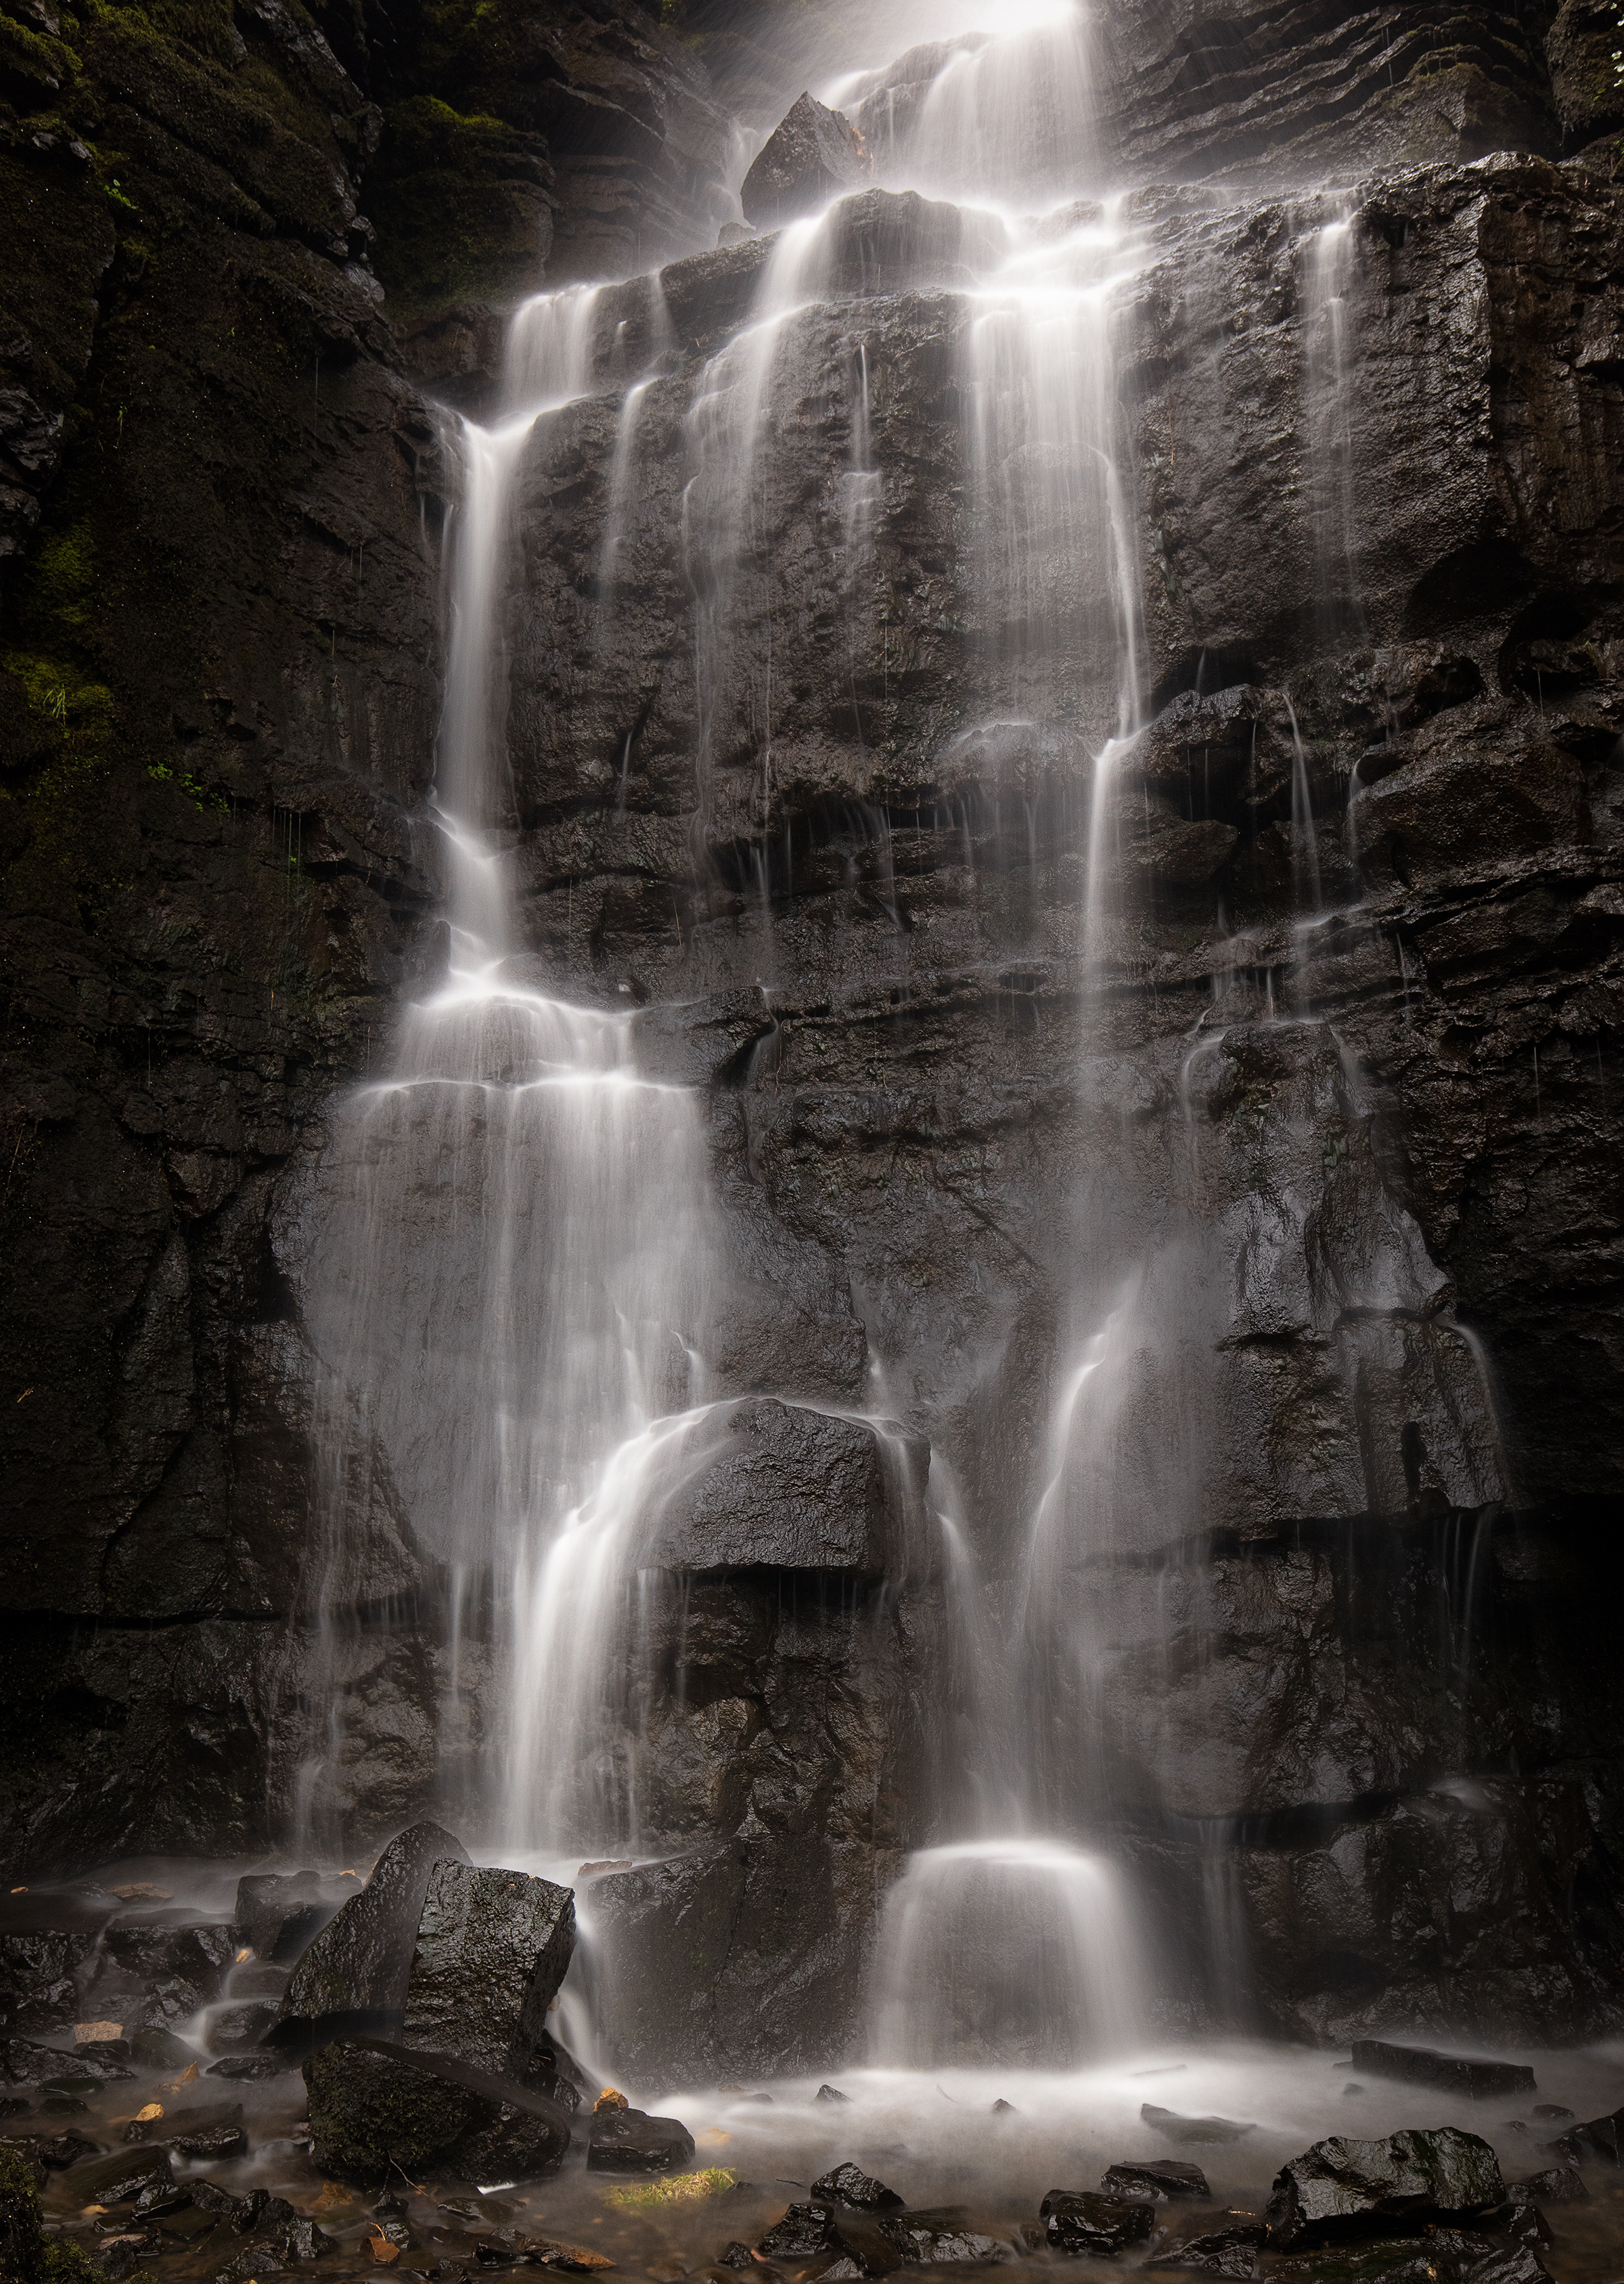 Waterfall Swallet in the Peak District Landscape Photography